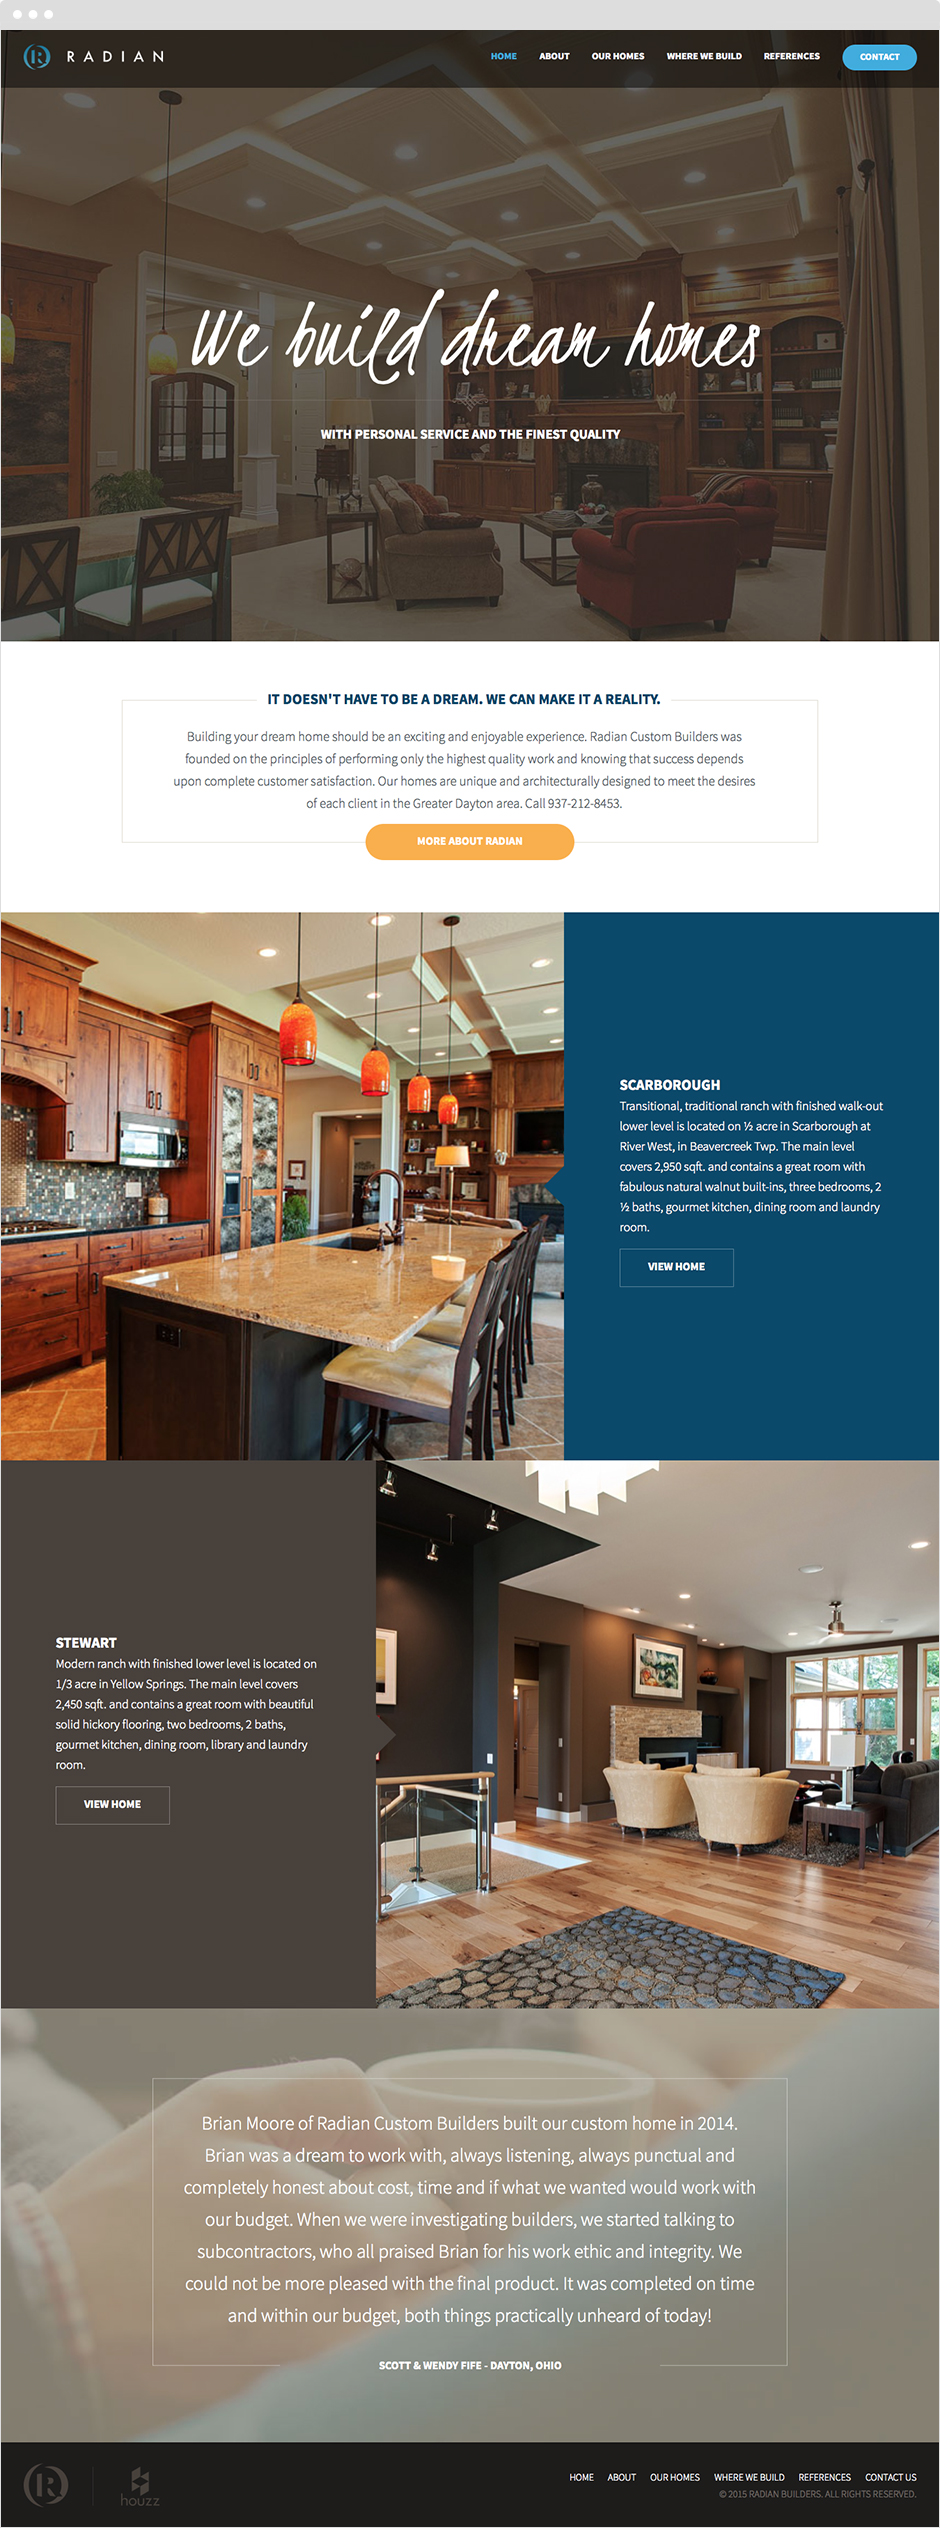 Radian Custom Home Builders Responsive ExpressionEngine Website Design